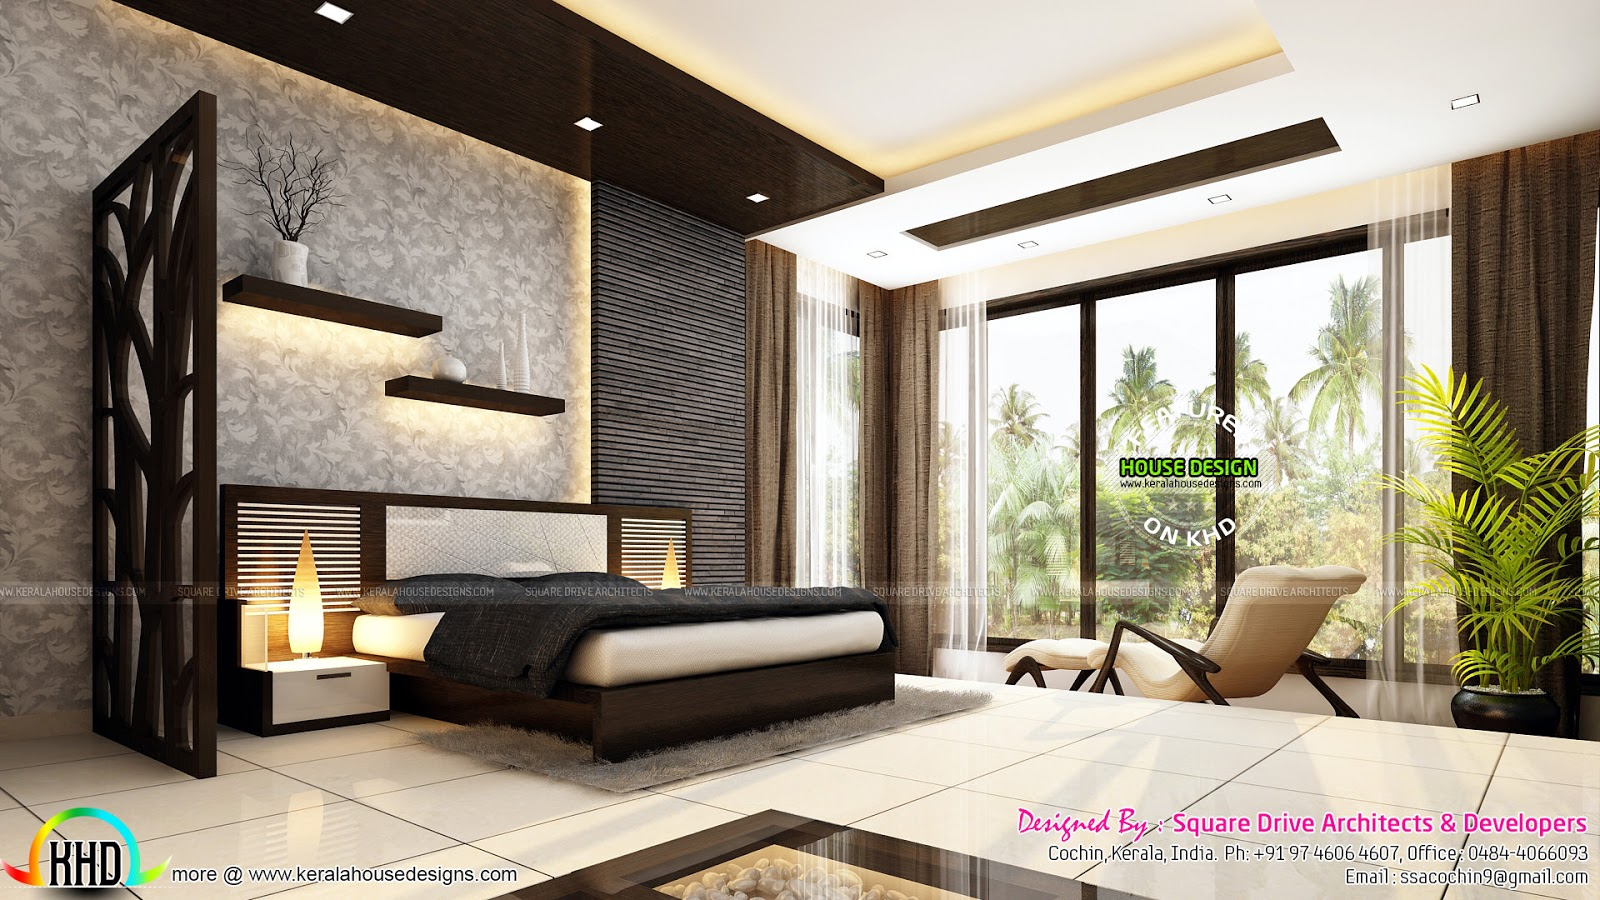 Very beautiful modern interior designs kerala home for Design ideas home